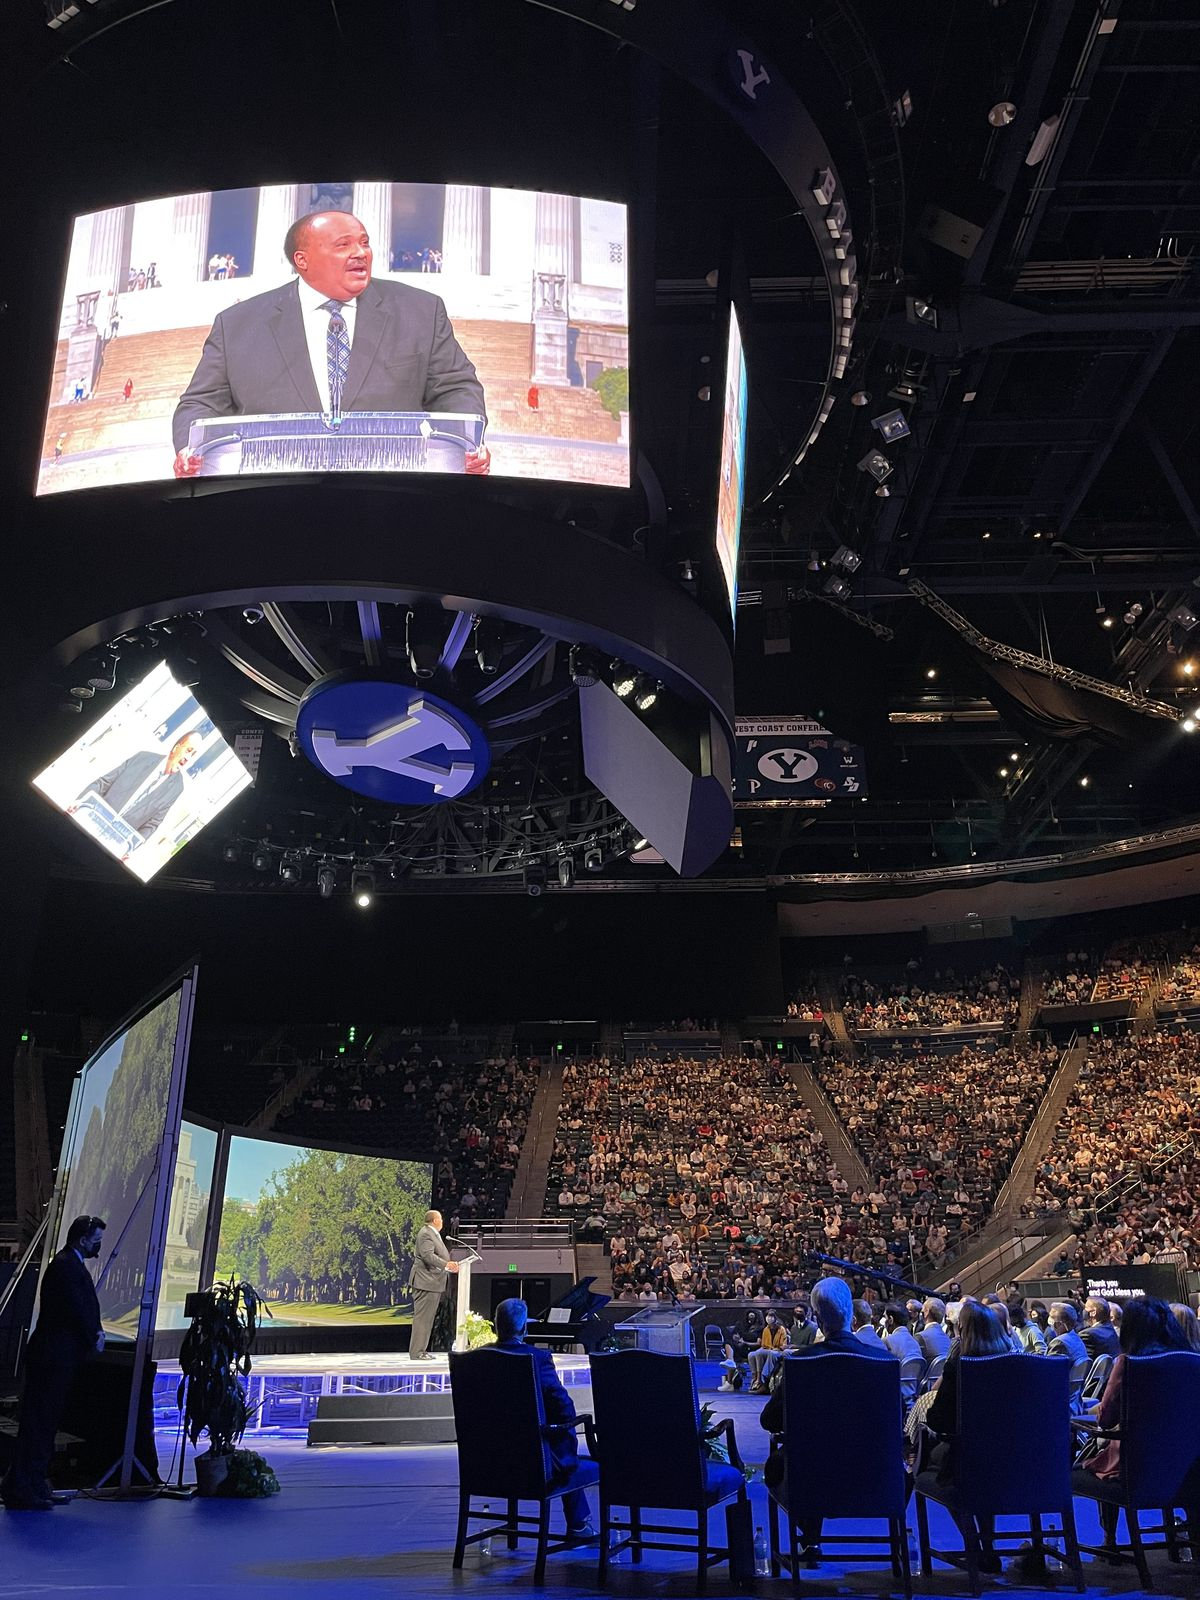 Martin Luther King III speaks to a large forum audience at Brigham Young University in Provo, Utah, on Sept. 28, 2021.